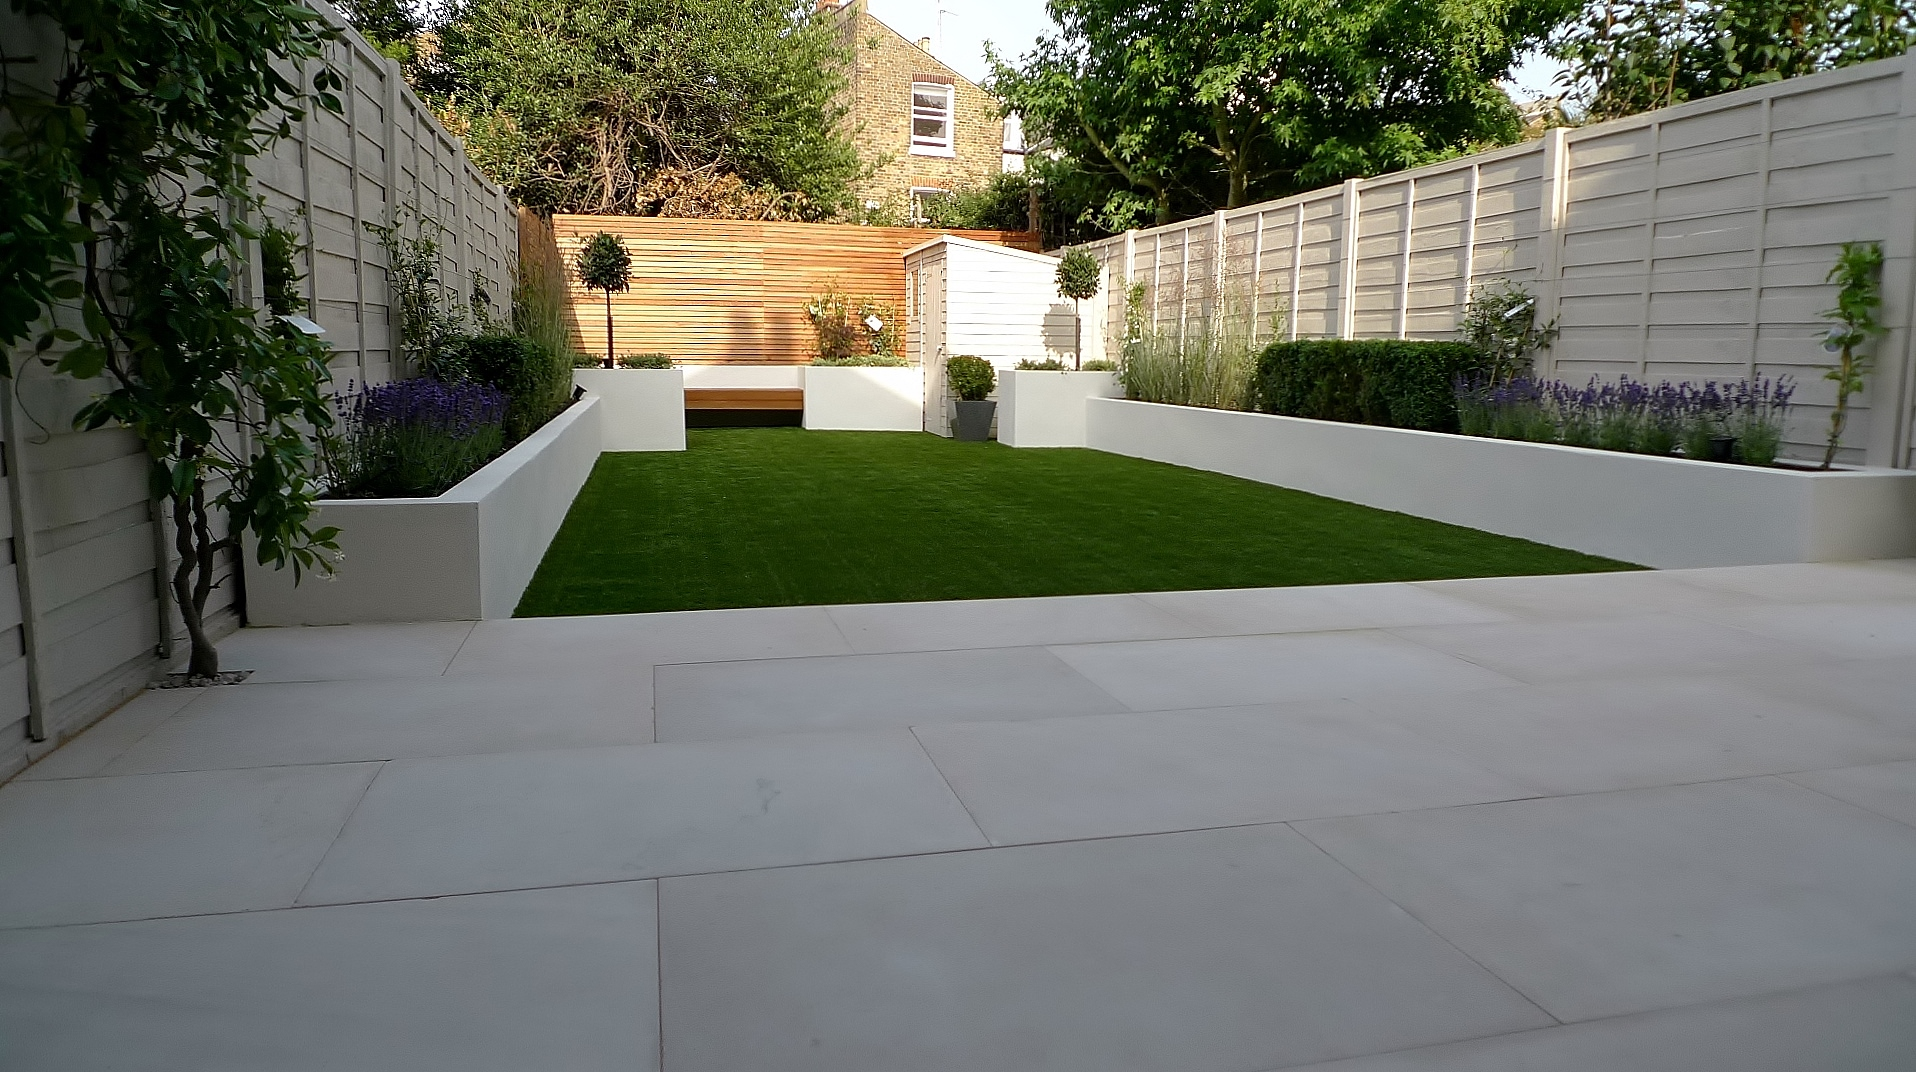 Anewgarden london garden blog for Landscape layout ideas